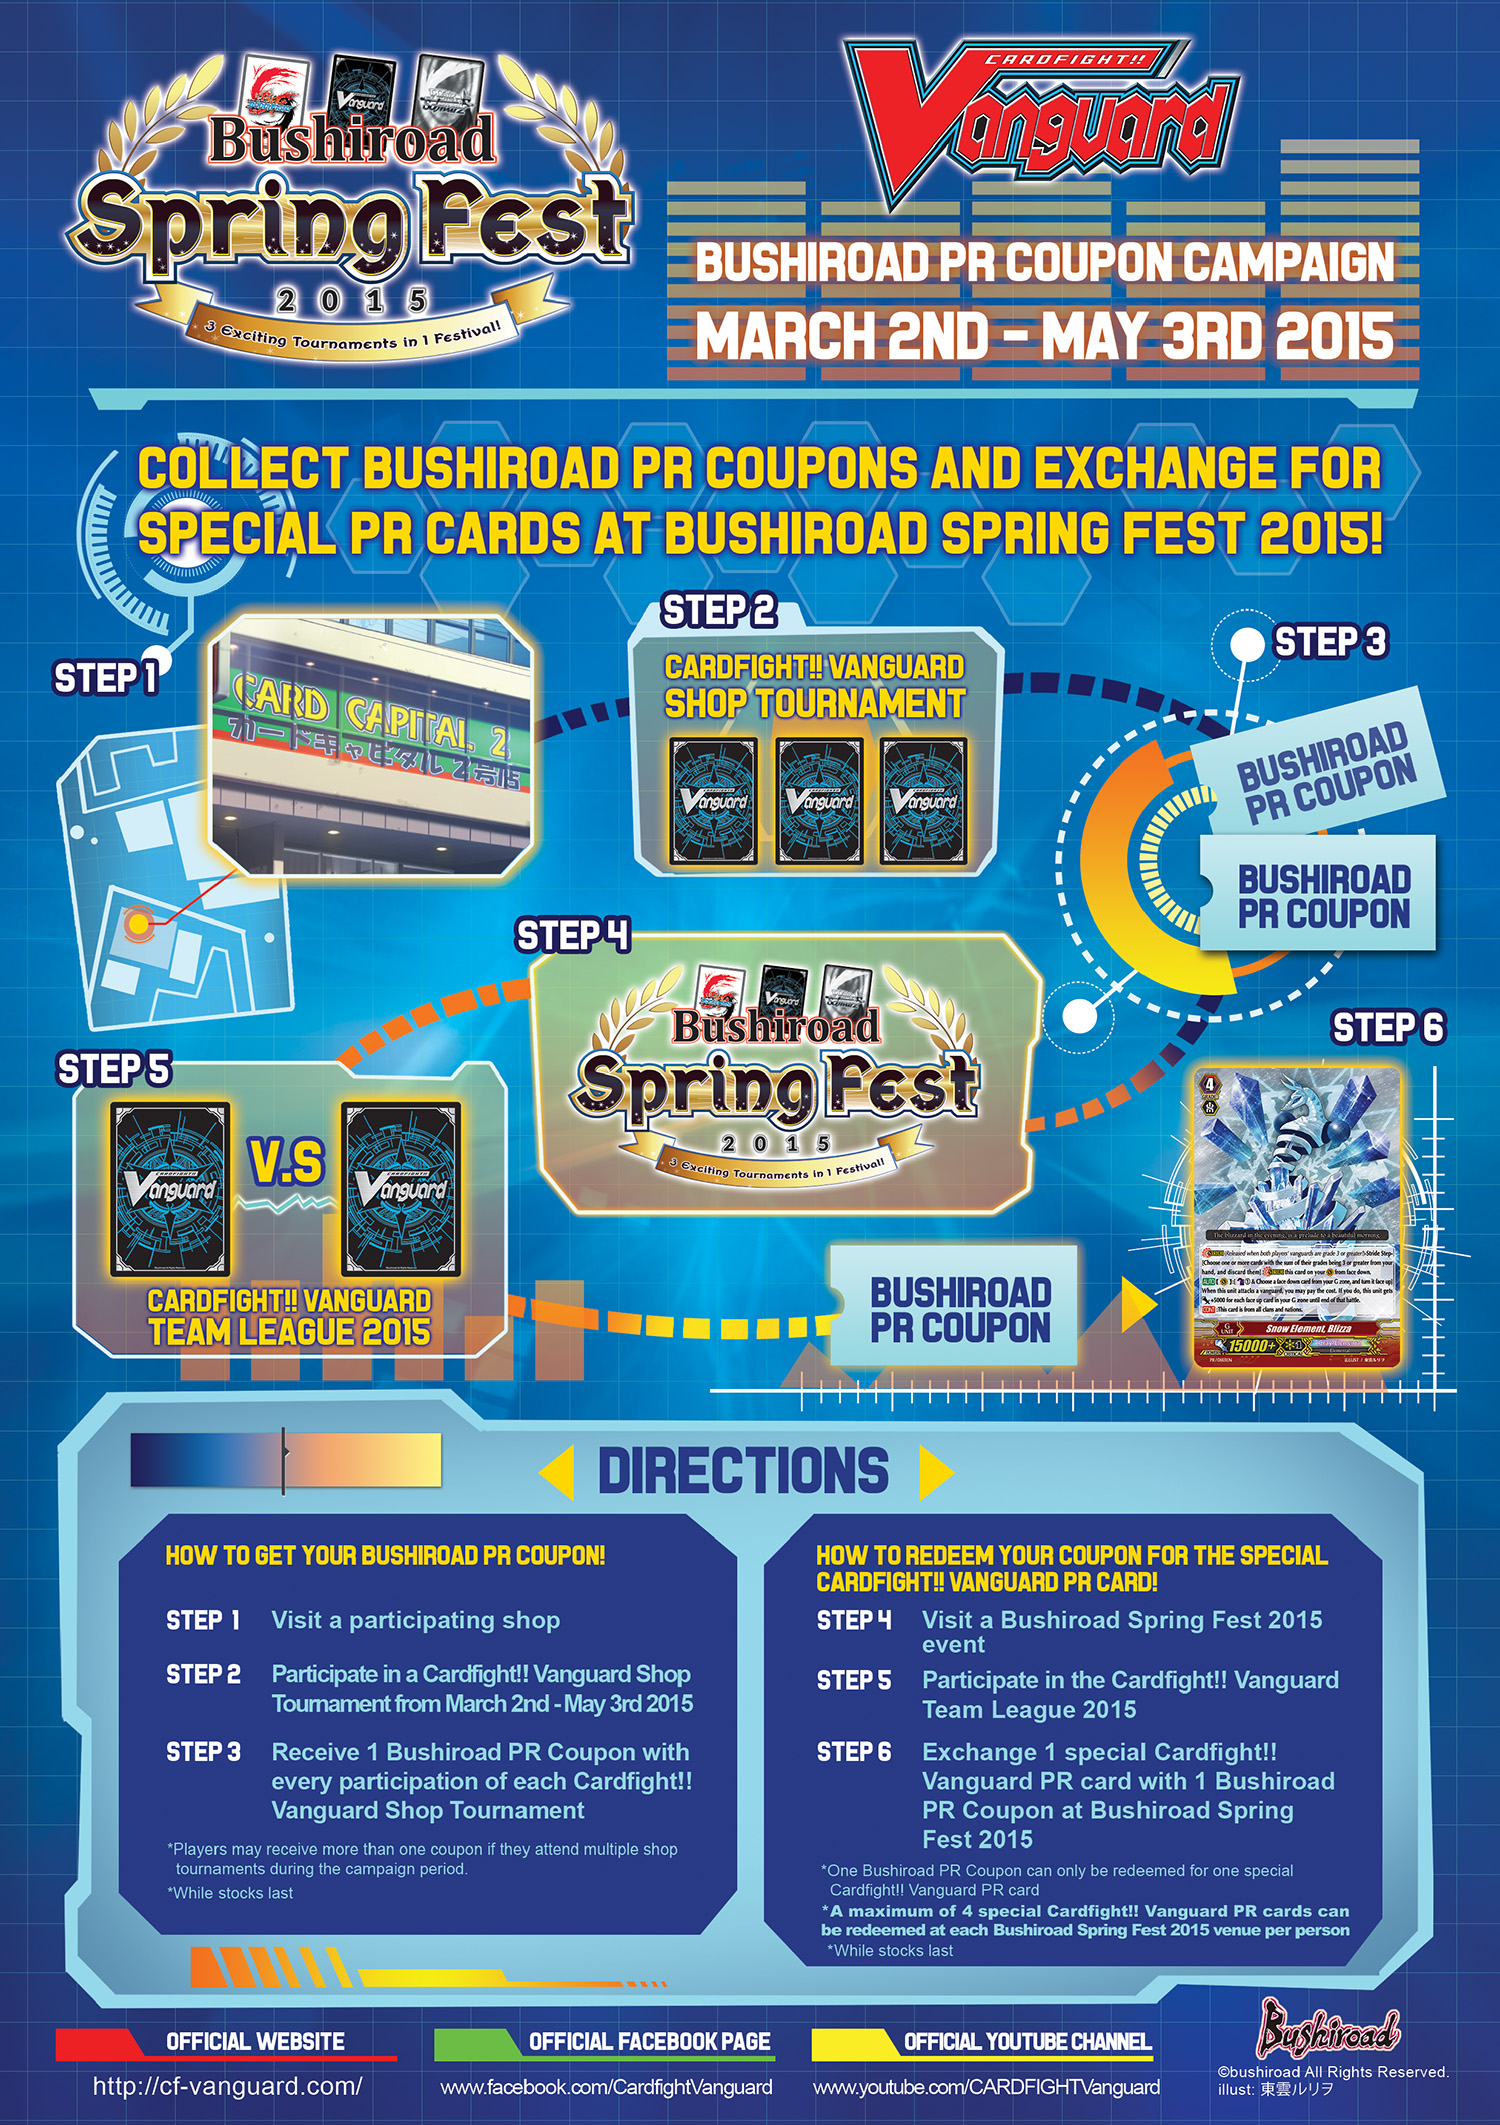 BSF2015 Coupon Campaign Poster